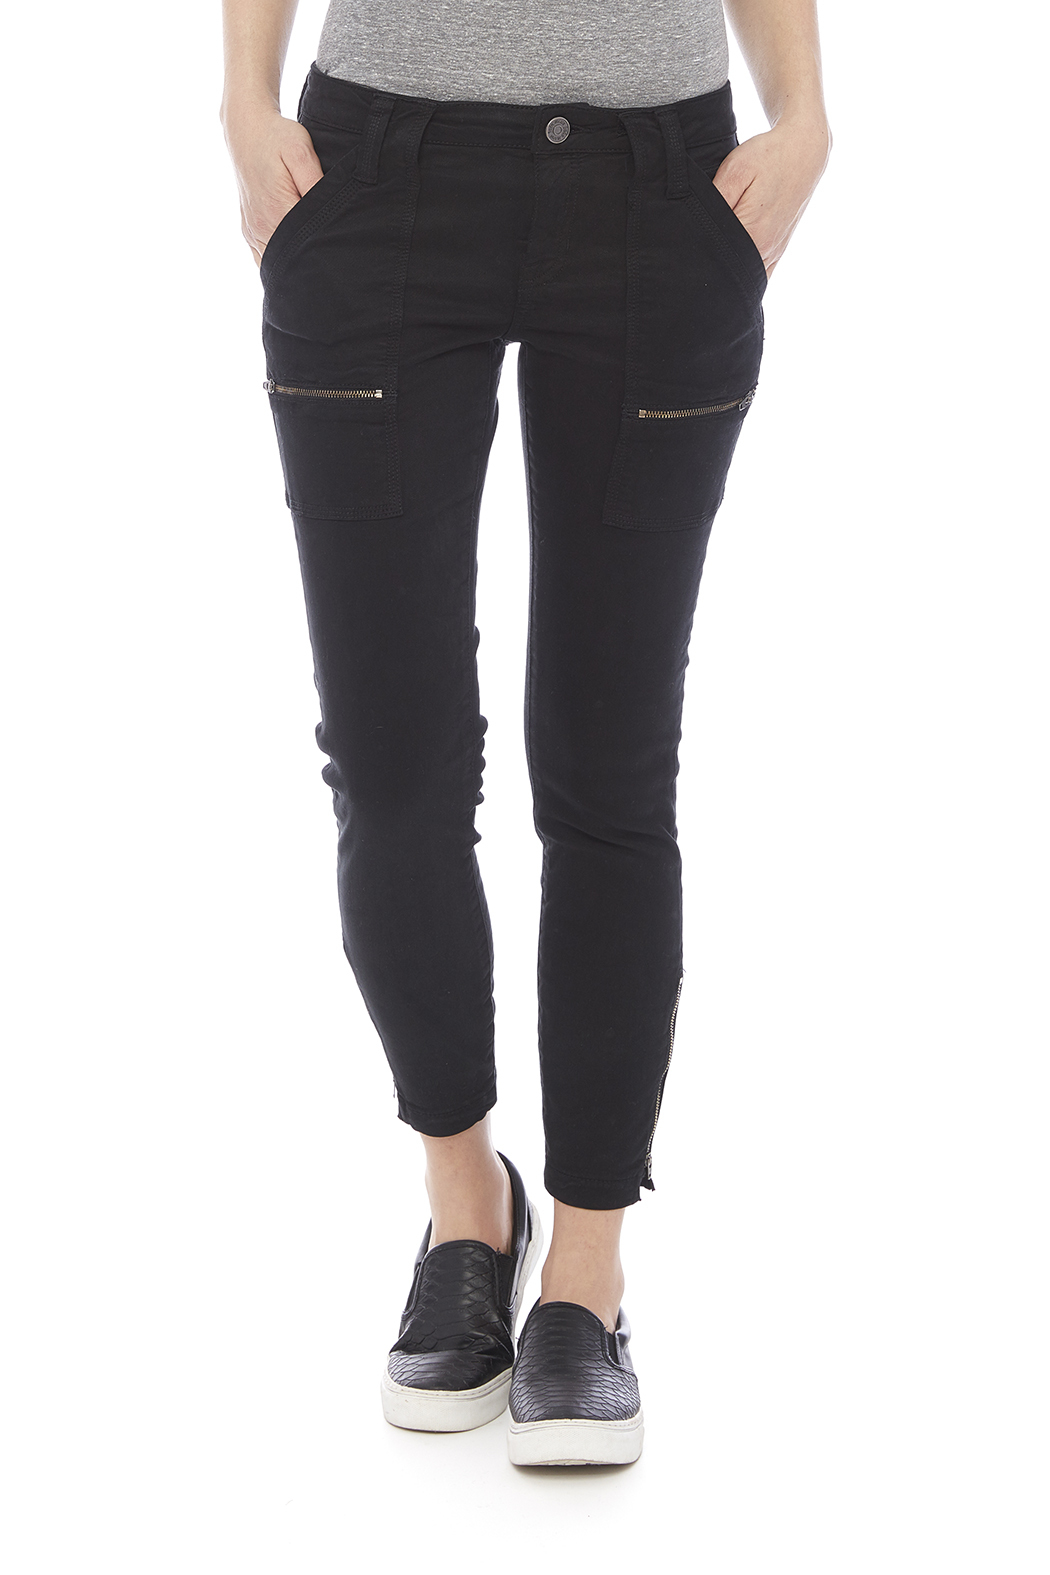 eaefe8dc2a8f Joie Park Skinny Jeans from Canada by Era Style Loft — Shoptiques